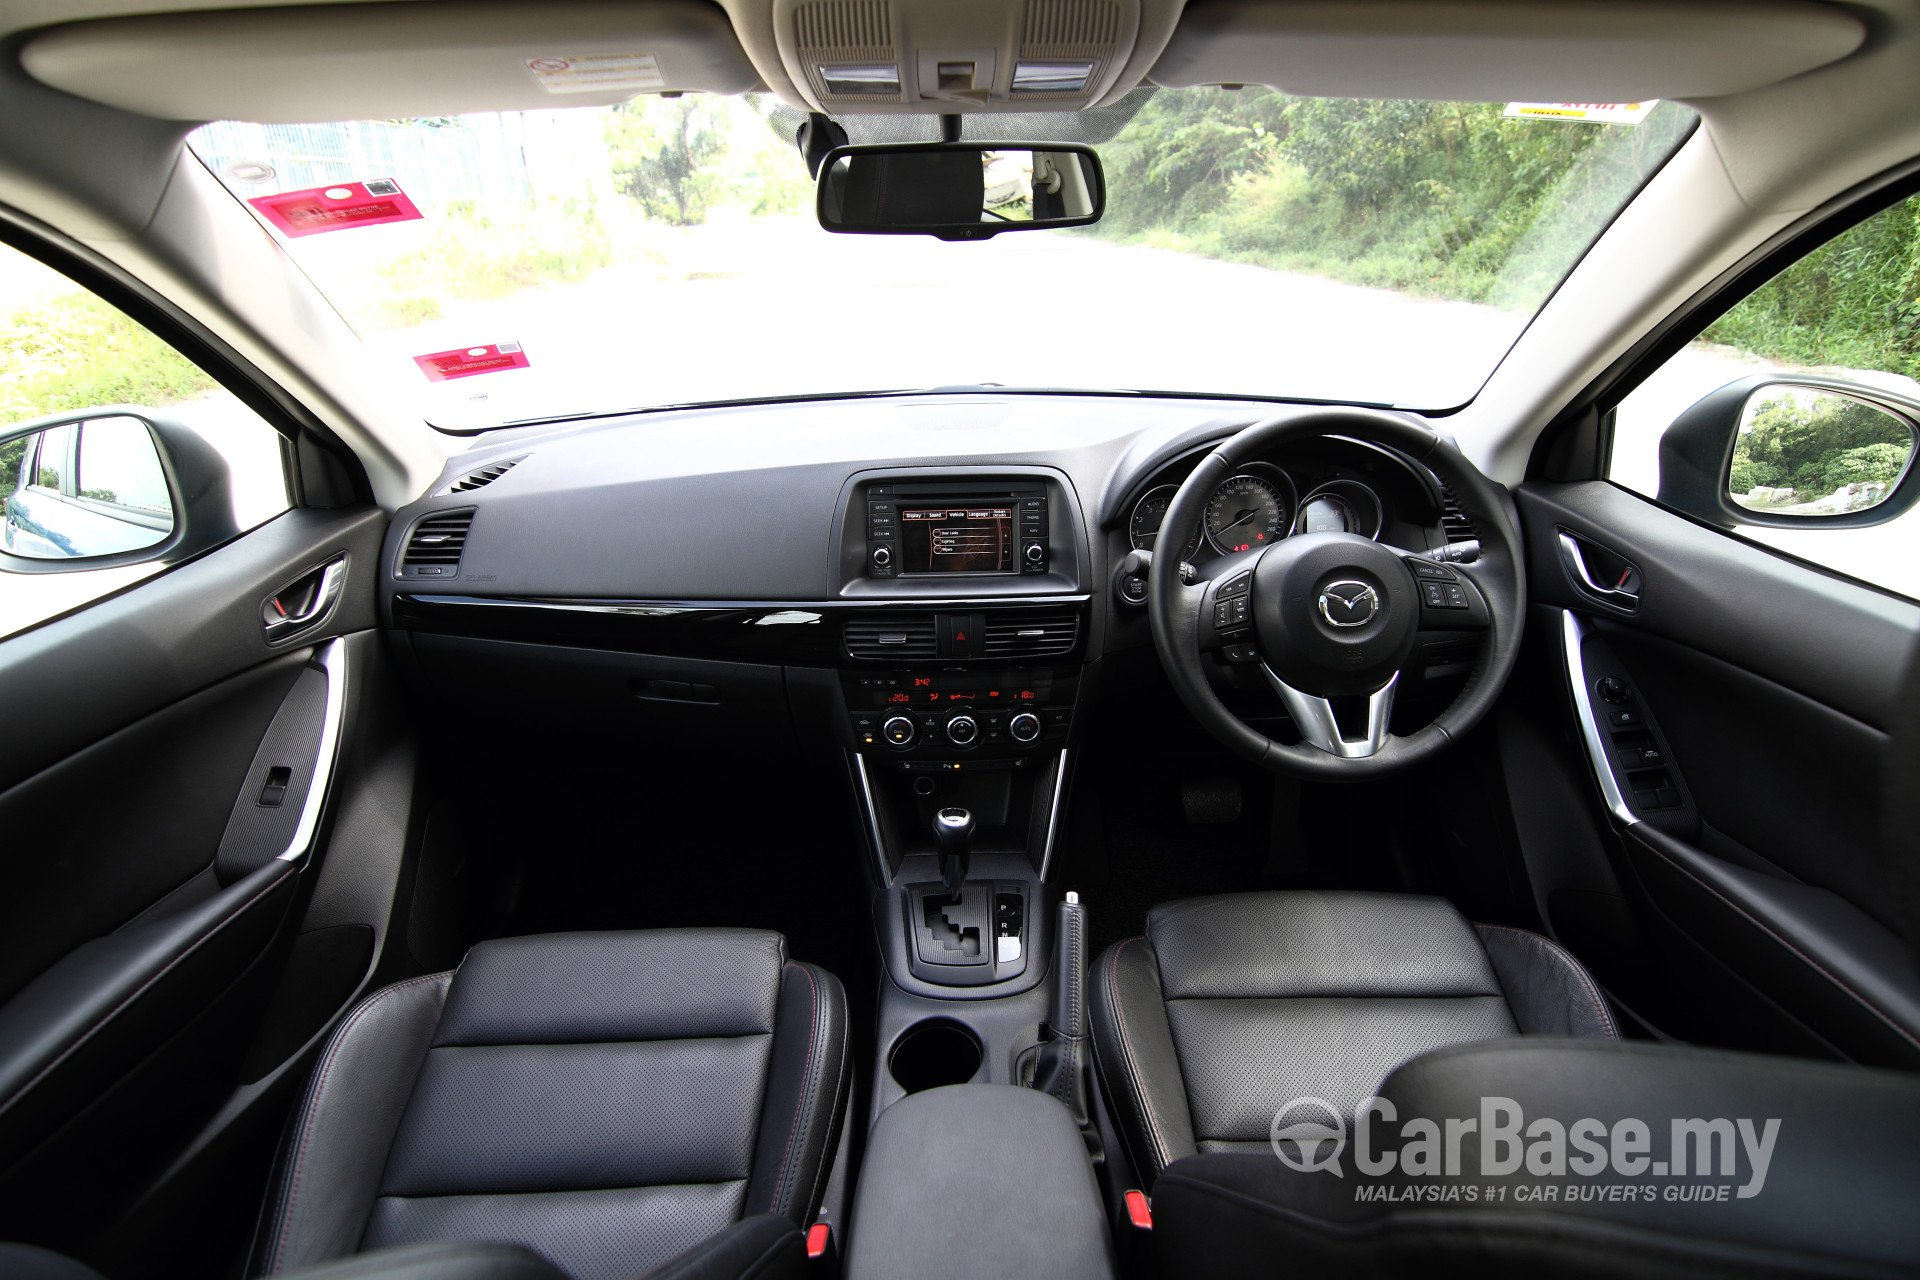 mazda cx 5 mk1 2012 interior image 7583 in malaysia reviews specs prices. Black Bedroom Furniture Sets. Home Design Ideas